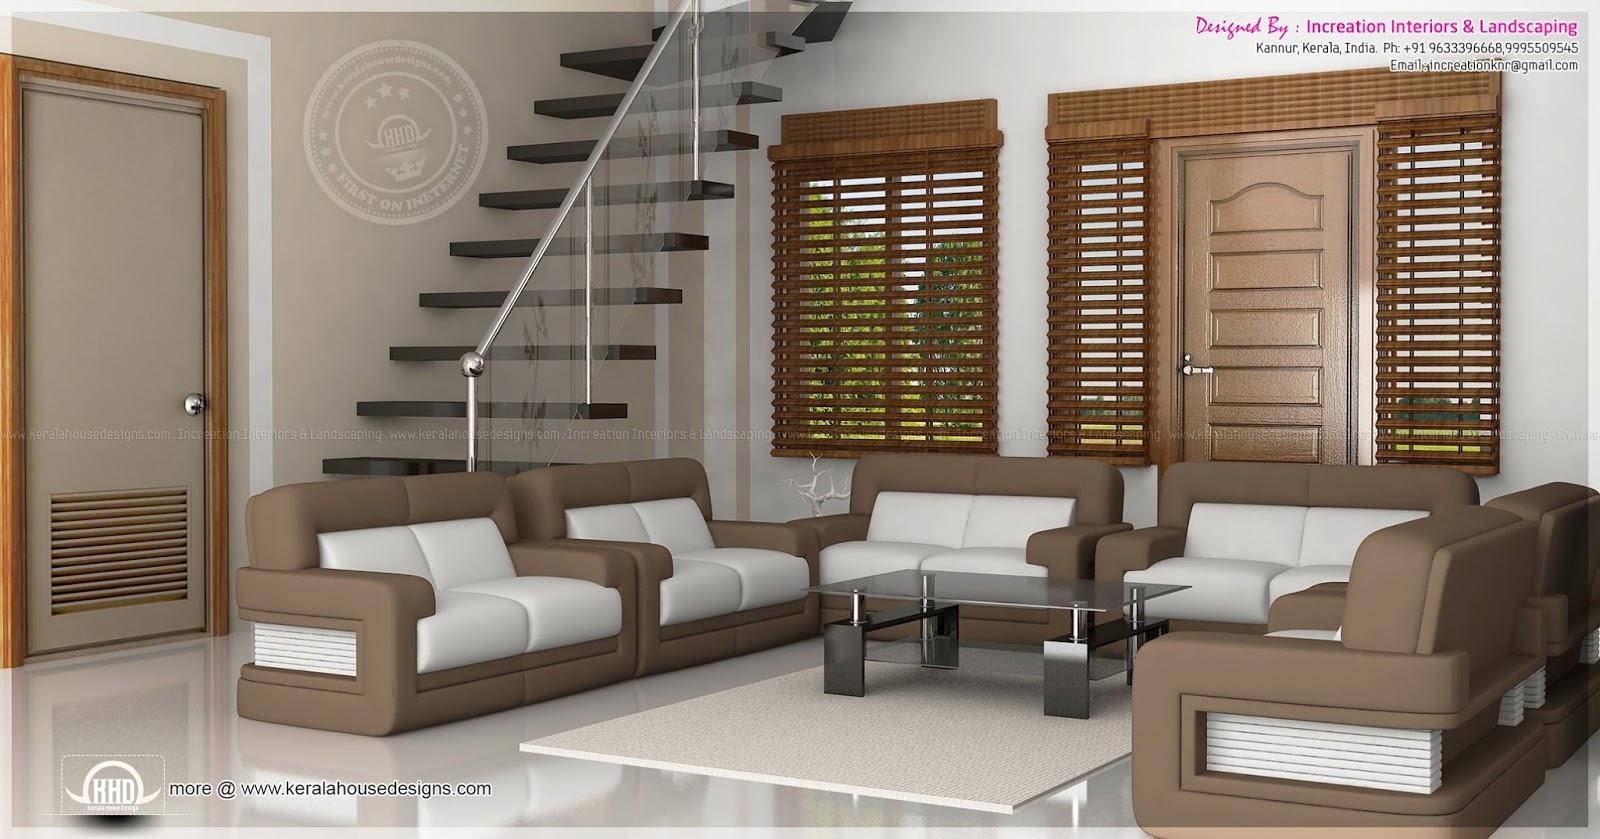 Living Room Interior Design In Kerala 3d interiorsincreation interiors - kerala home design and